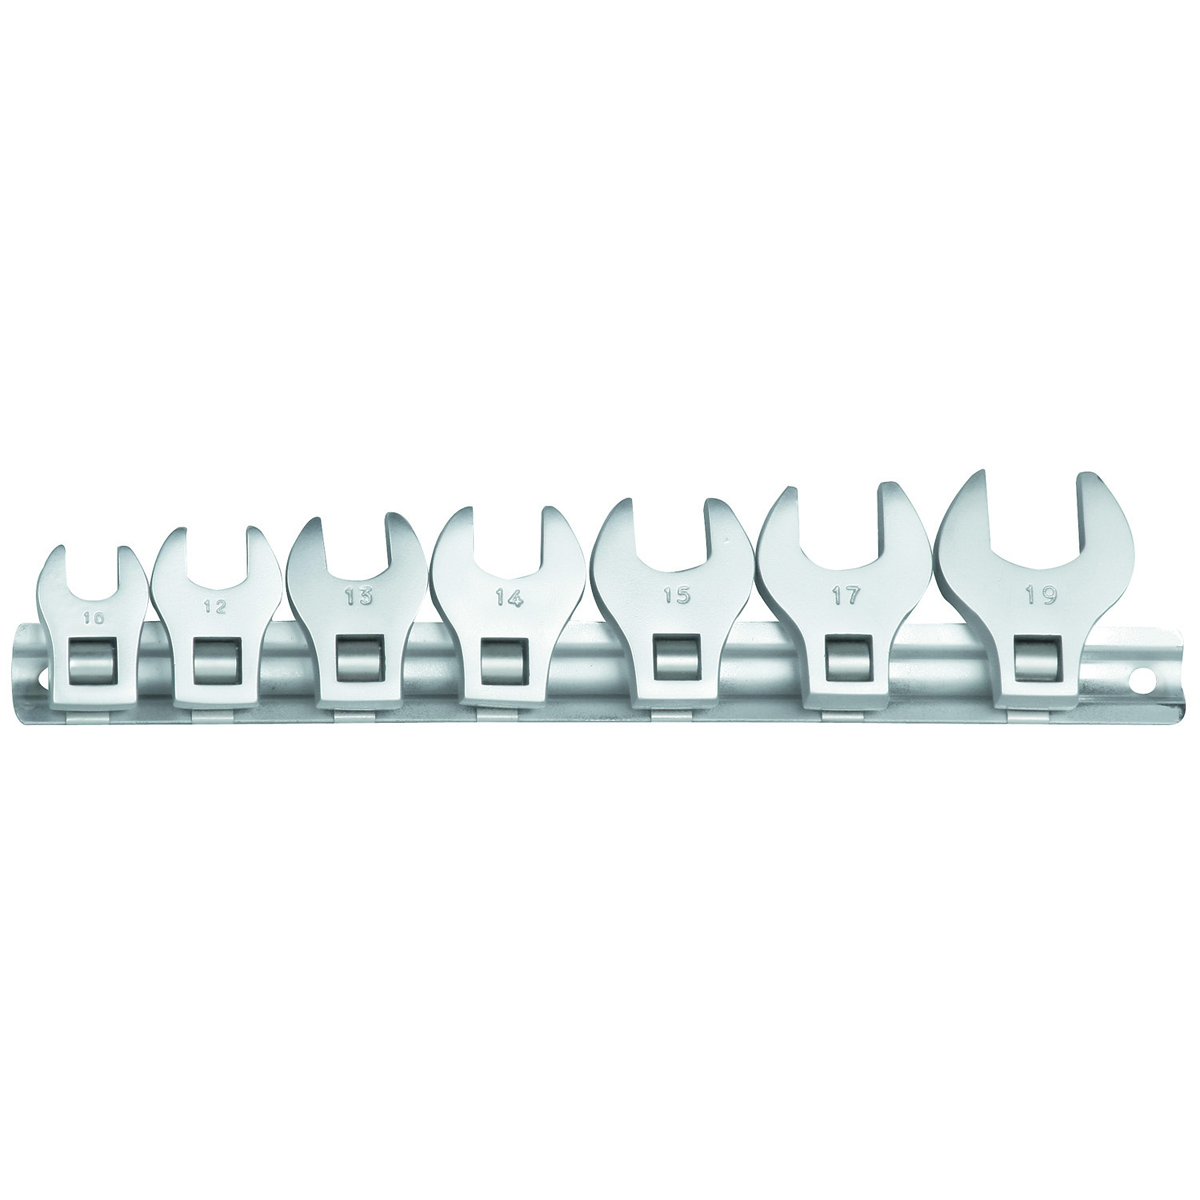 PITTSBURGH 3/8 in. SAE Crowfoot Wrench Set 7 Pc. - Item 94426